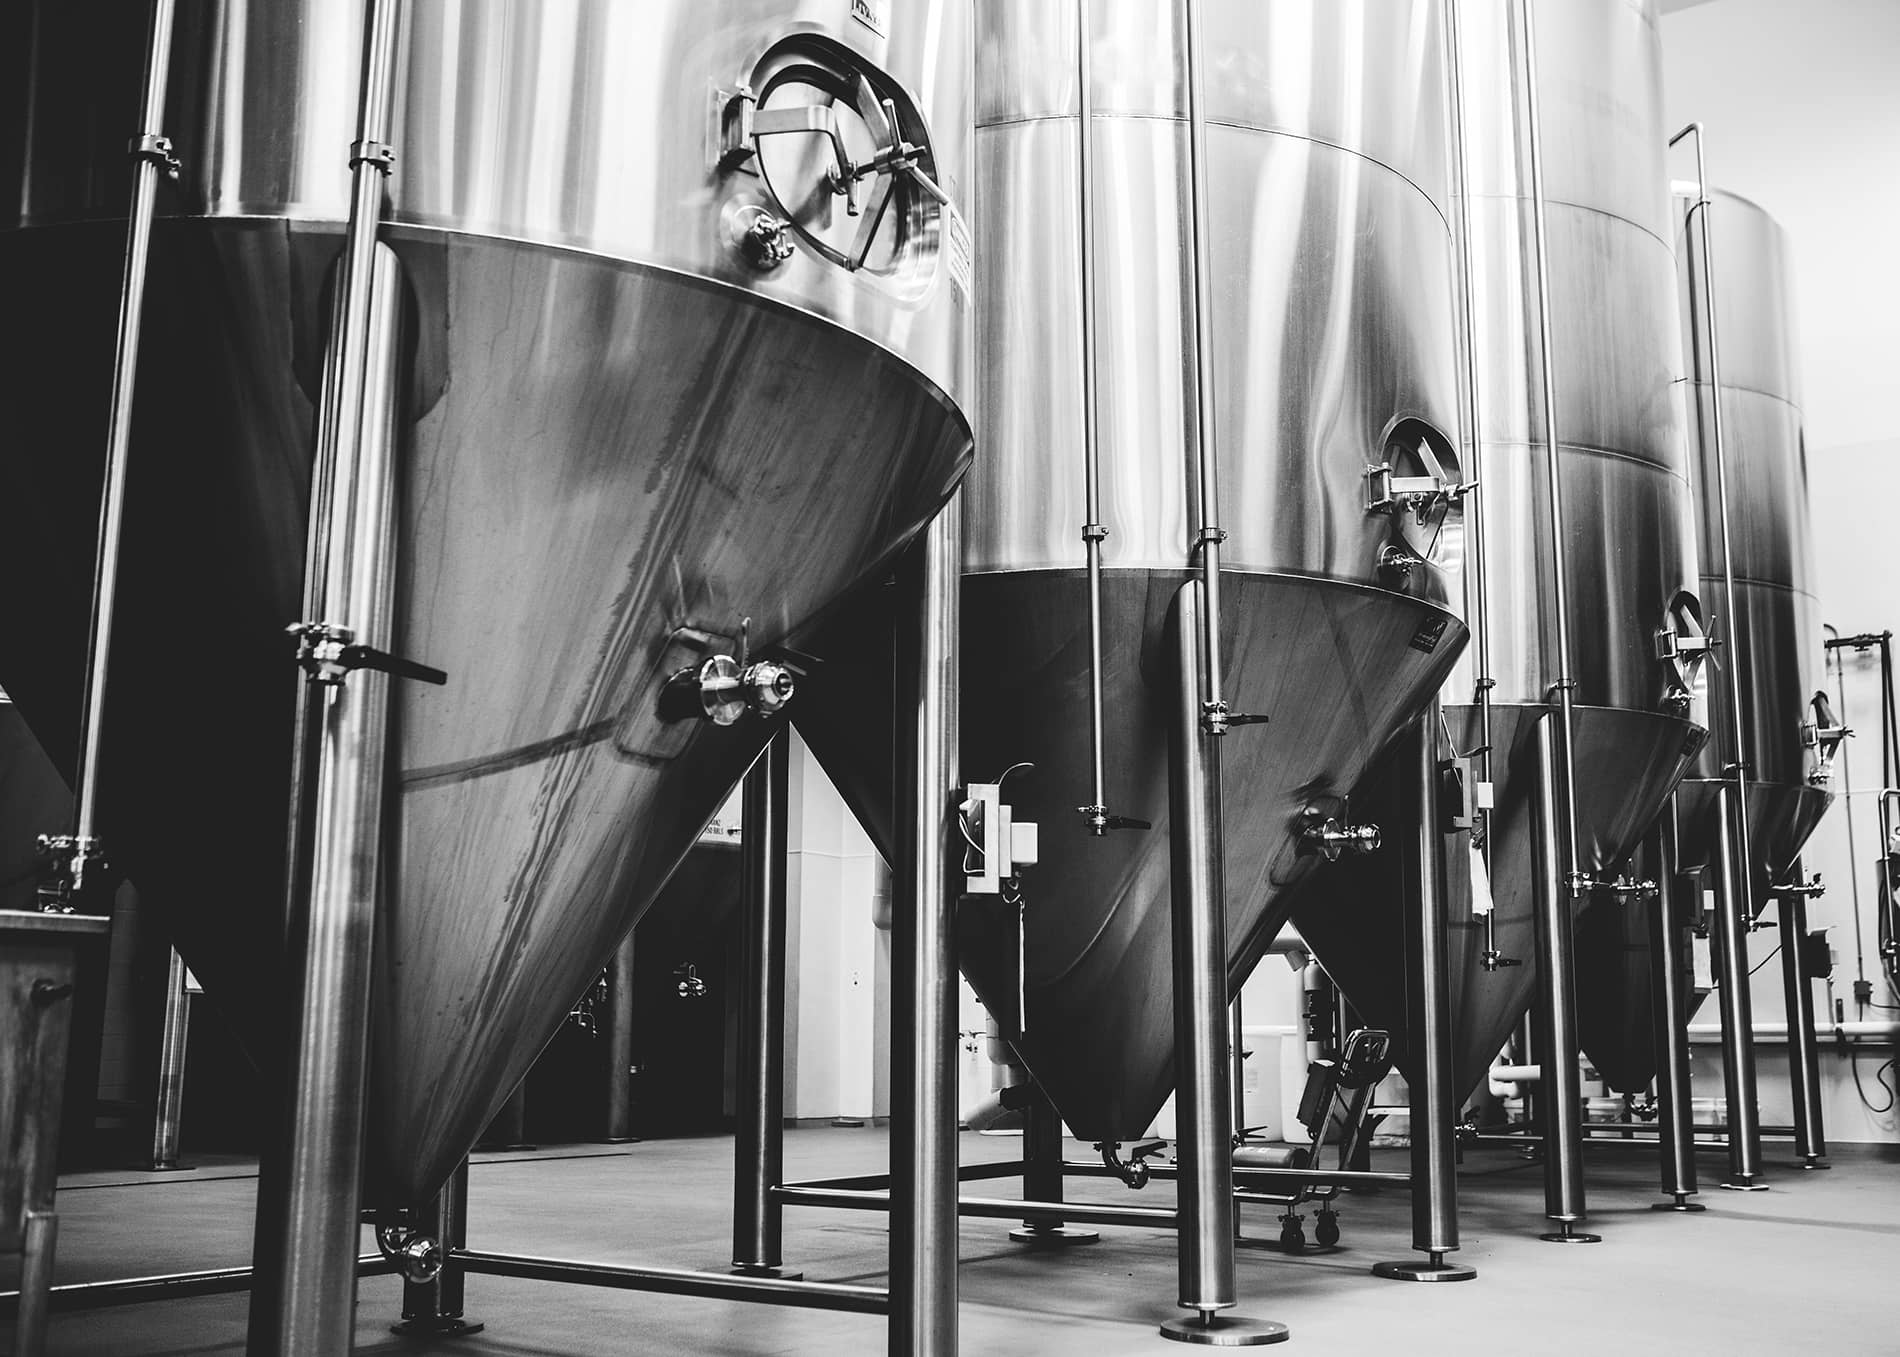 Visit White Labs Brewing Company